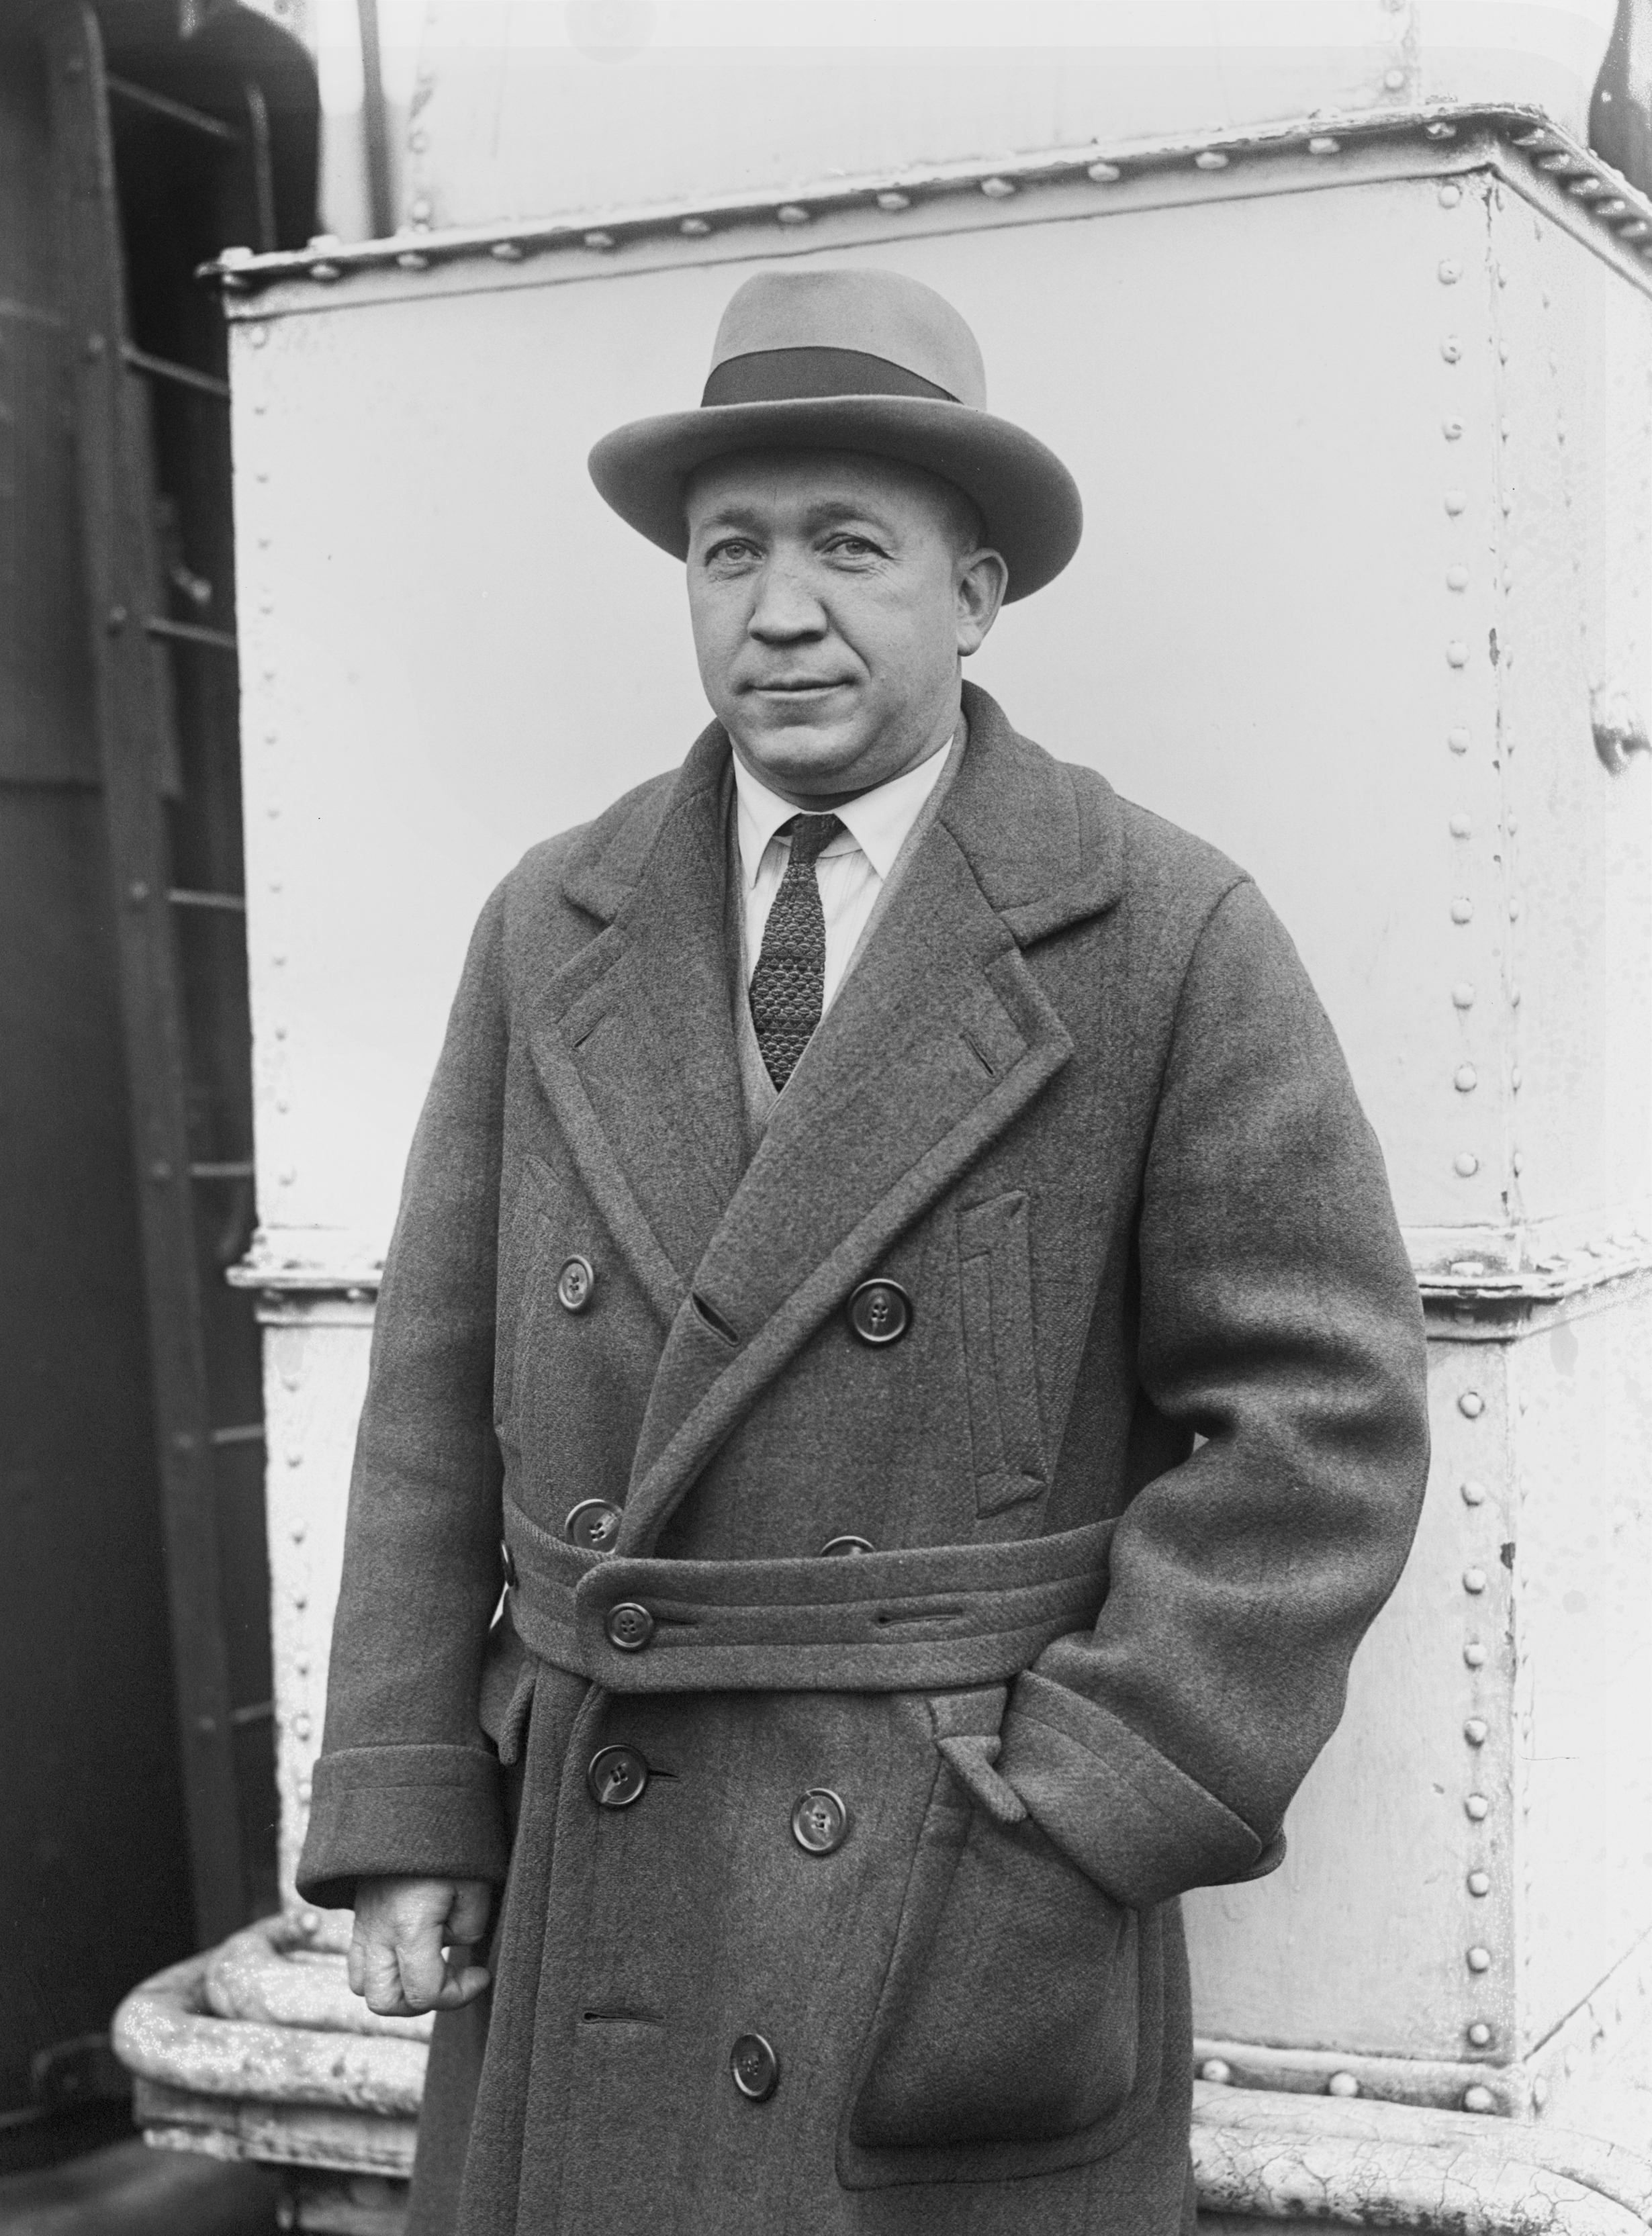 Photograph of Knute Rockne